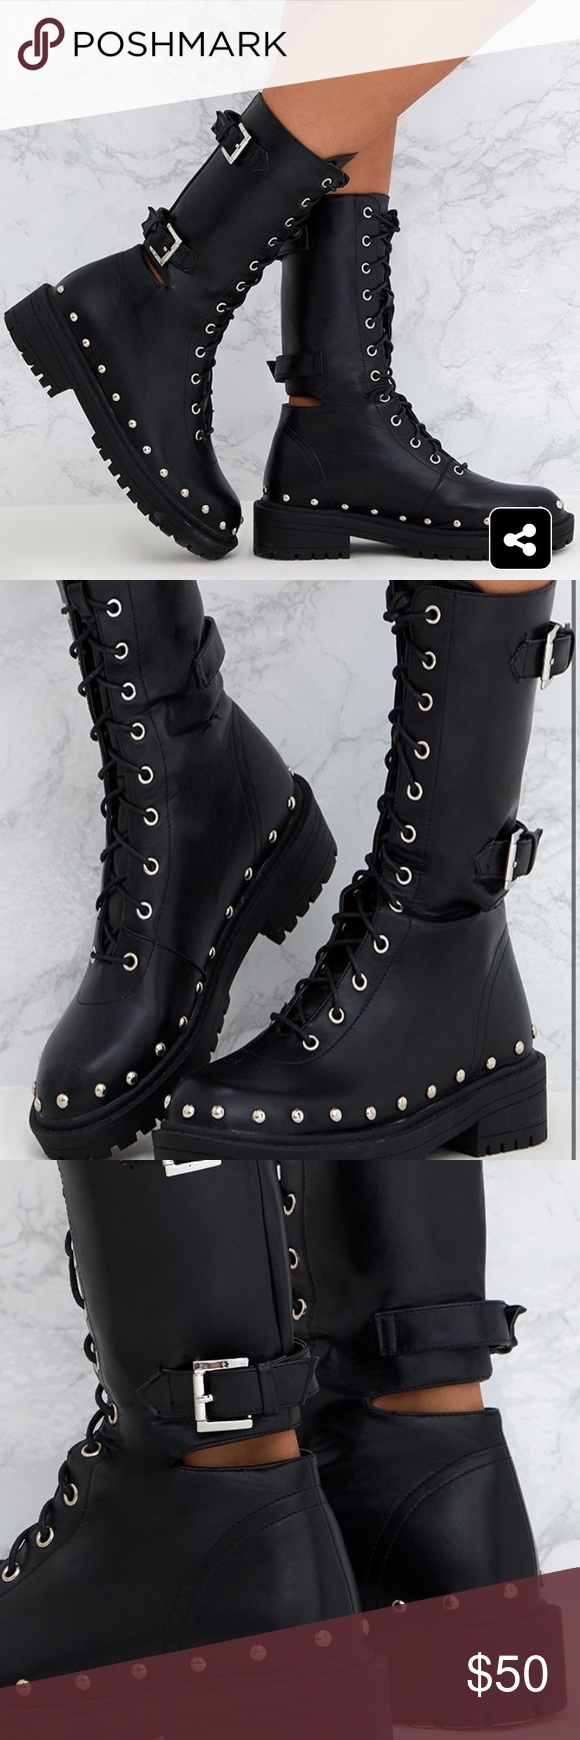 Black Chunky Hard Wear Lace Up Ankle